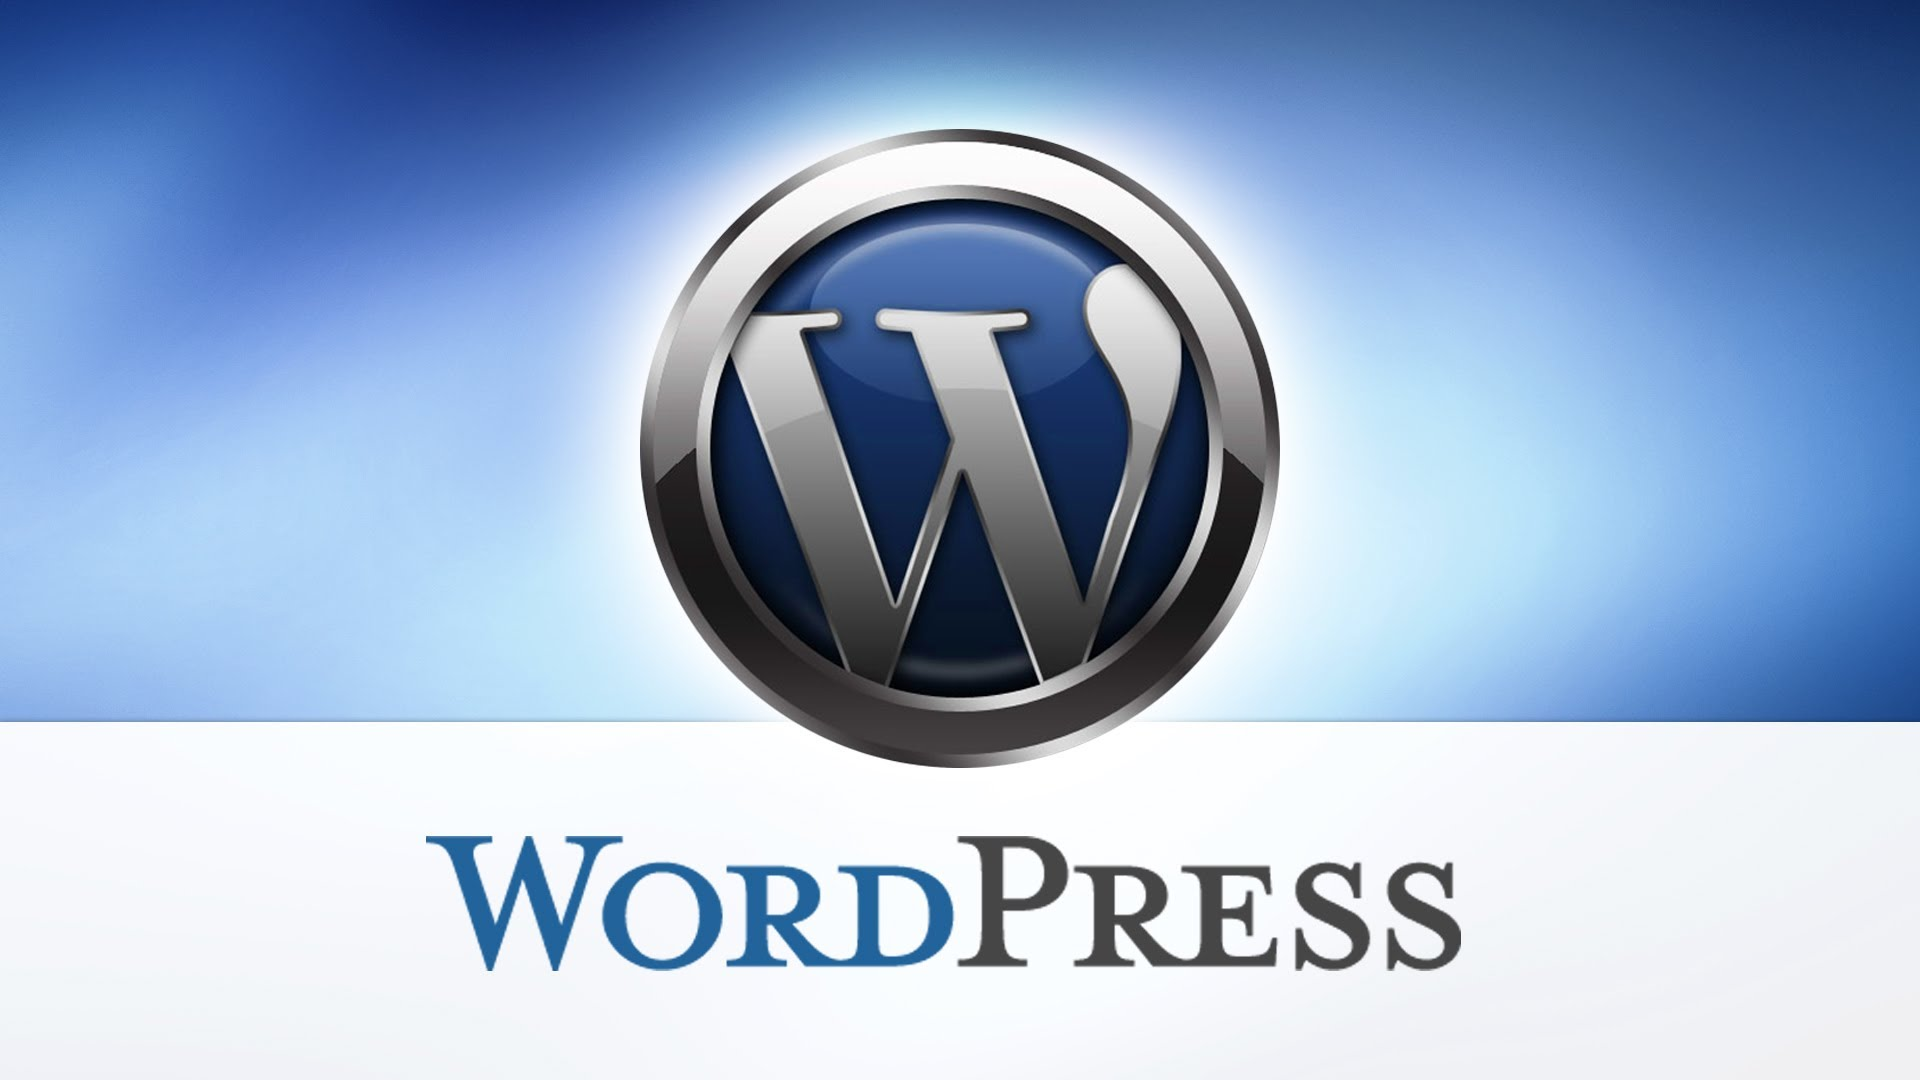 Create wordpress website/blog for you